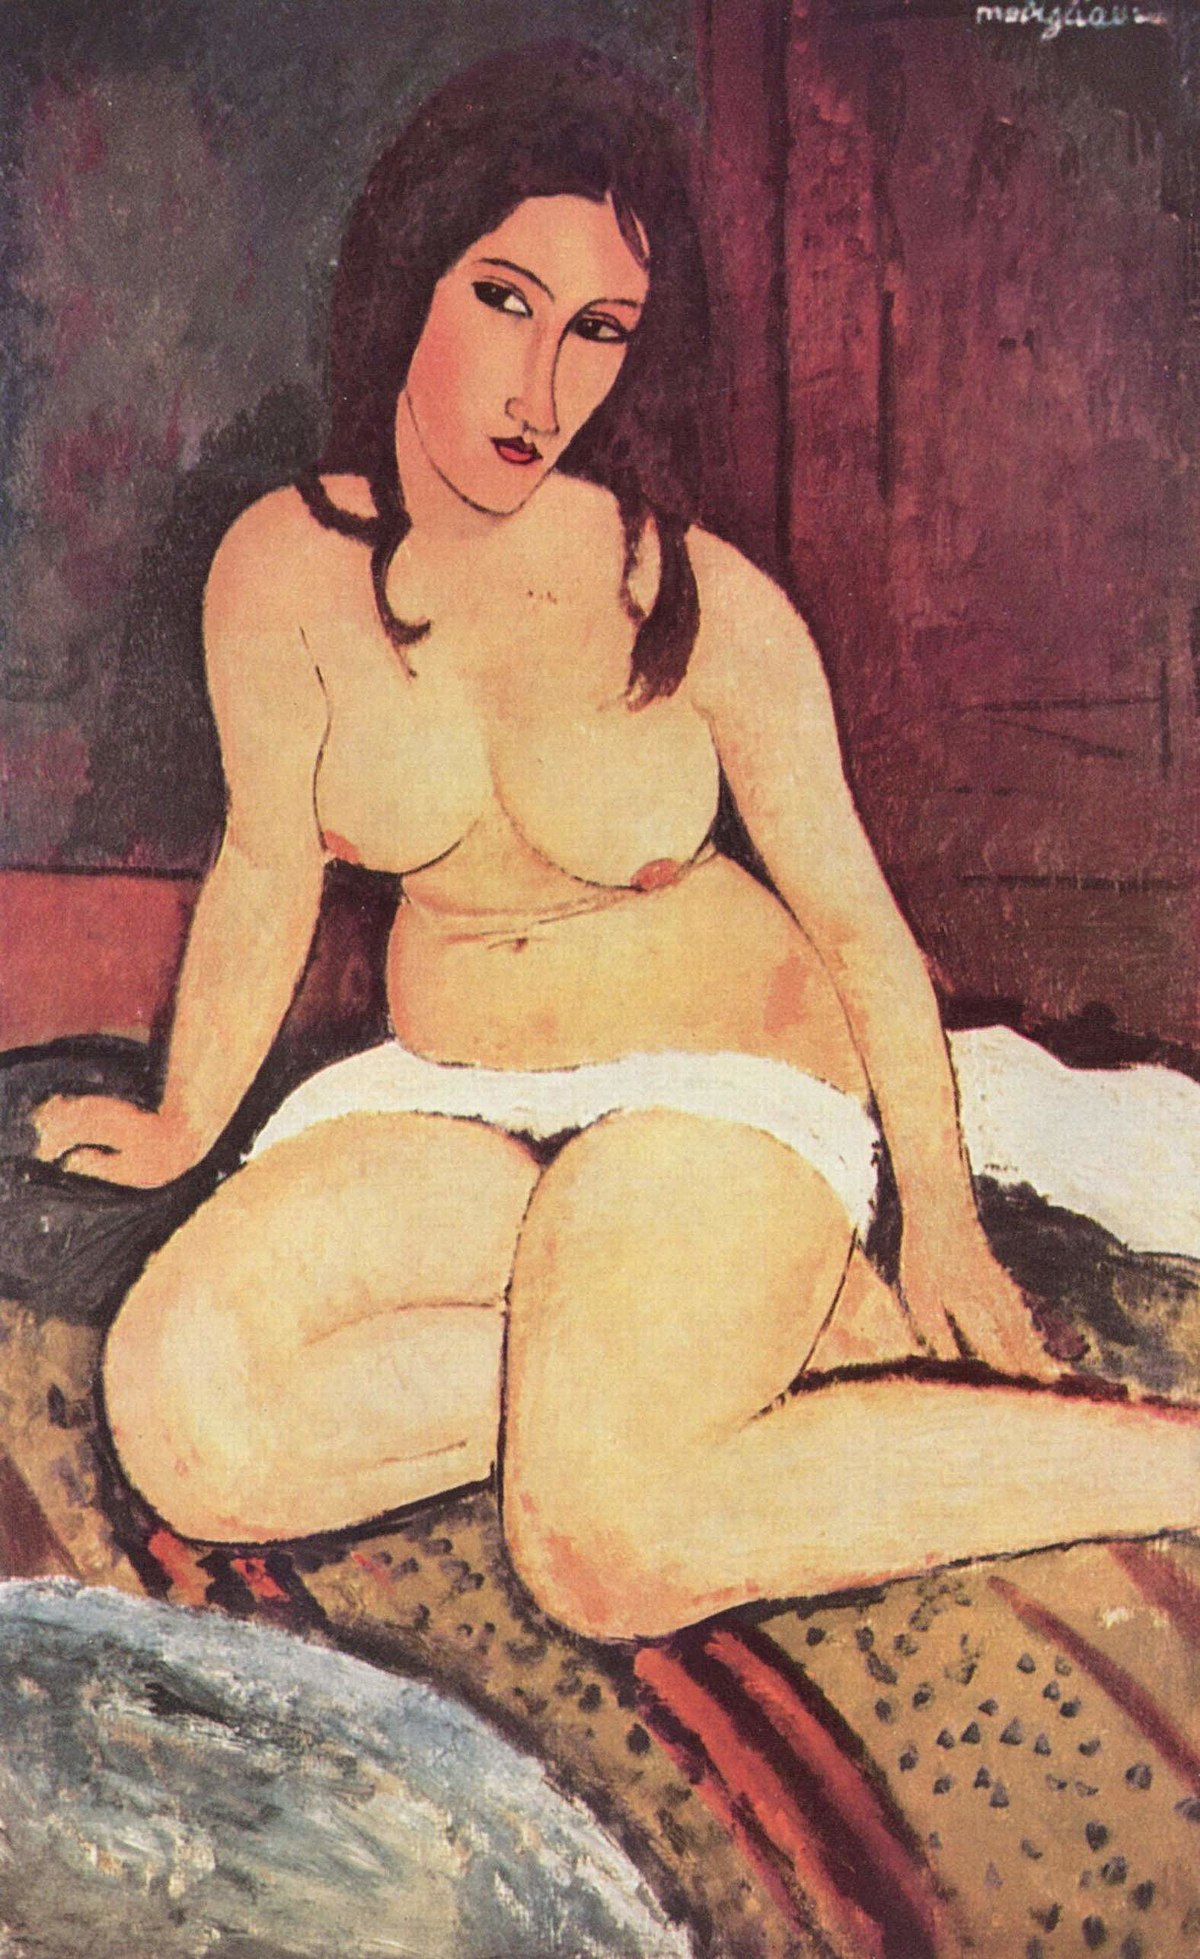 http://upload.wikimedia.org/wikipedia/commons/thumb/2/26/Amadeo_Modigliani_056.jpg/1200px-Amadeo_Modigliani_056.jpg